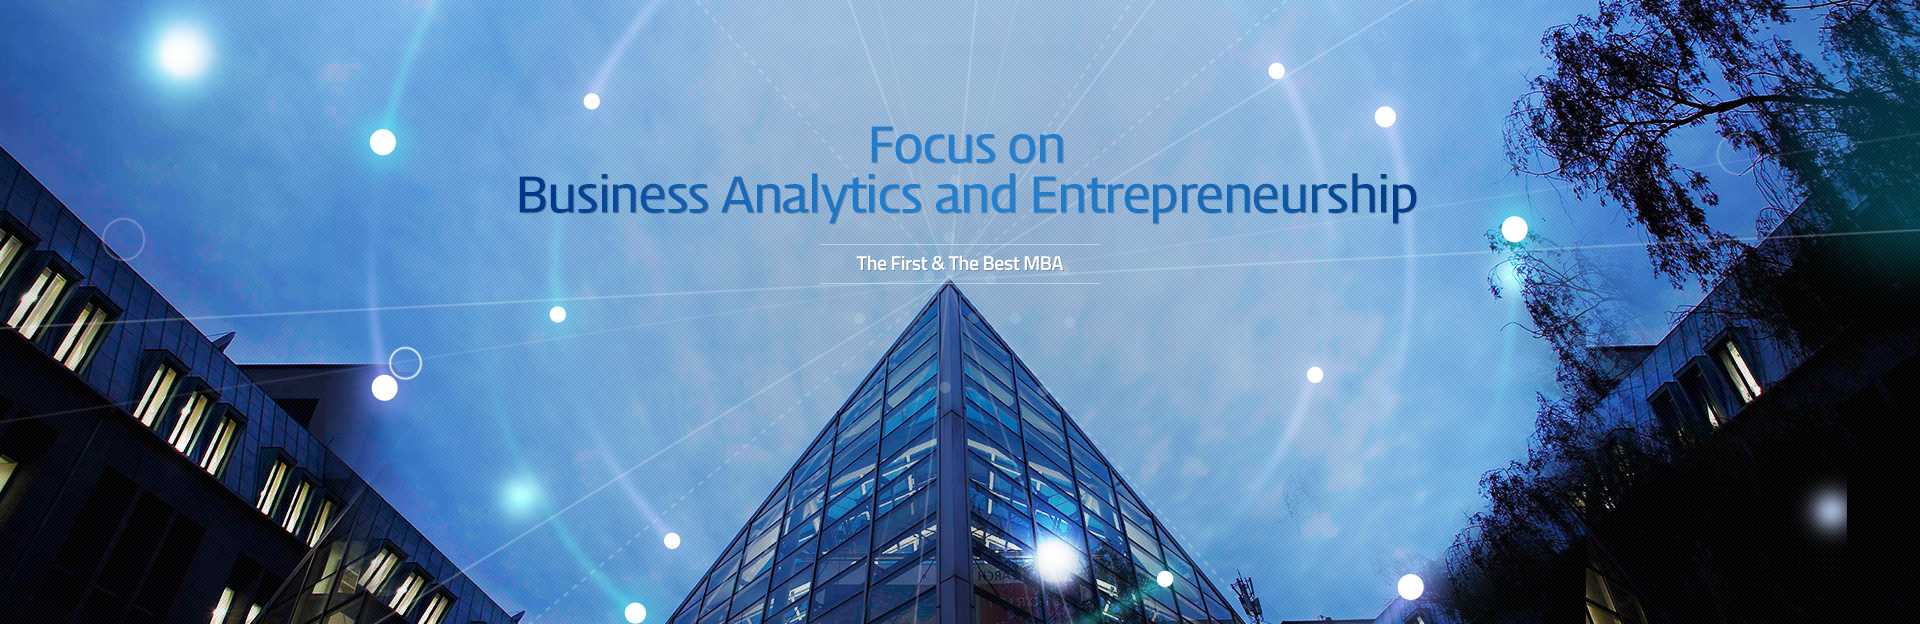 Nurturing convergent talented individuals based on Business Analytics and Entrepreneurship